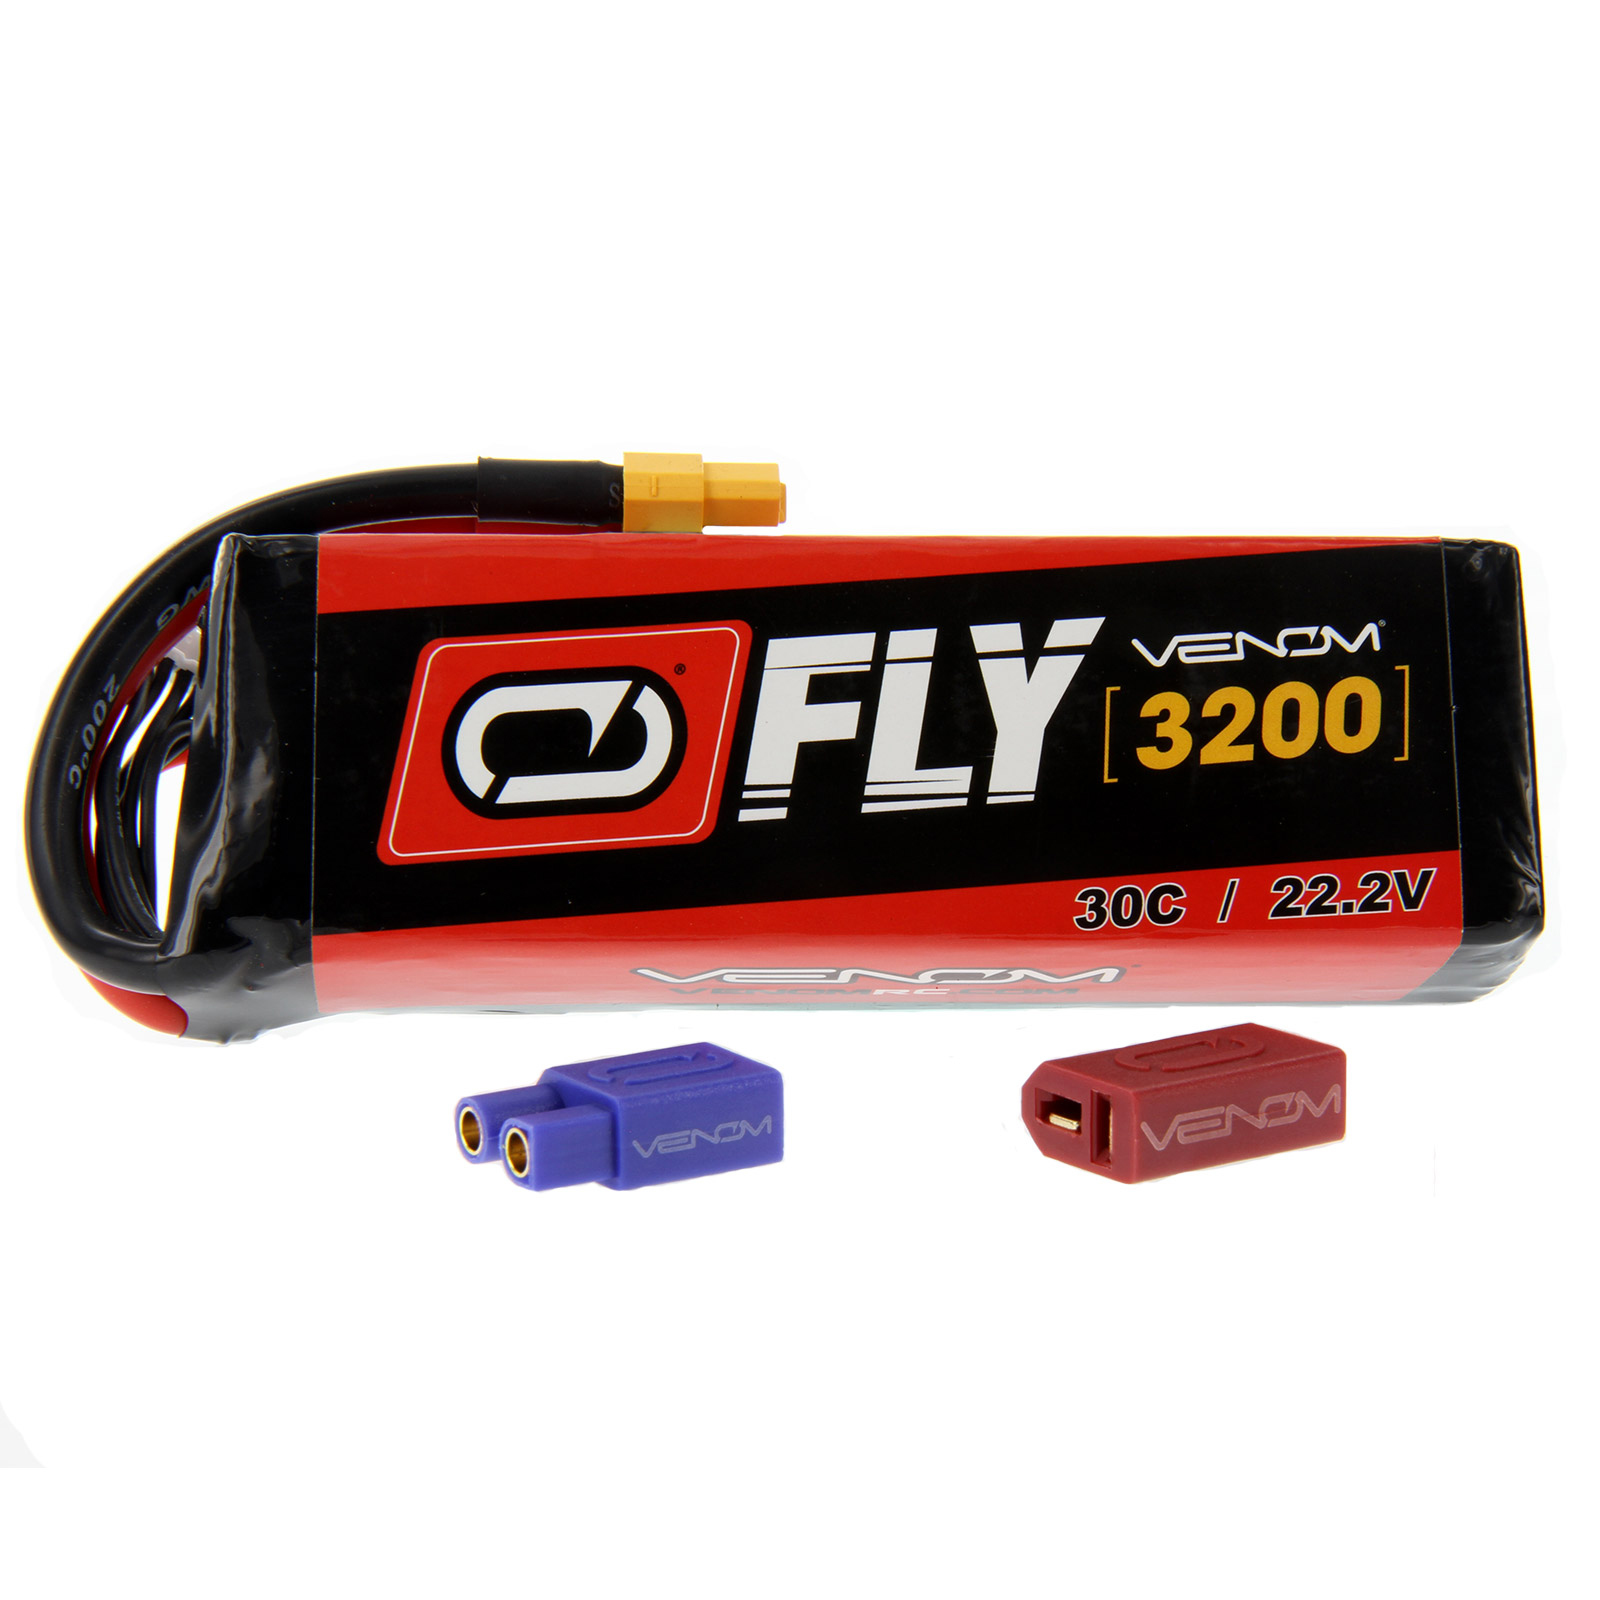 Venom Fly 30C 6S 3200mAh 22.2V LiPo Battery with UNI 2.0 Plug (XT60/Deans/EC3) - Compare to E-flite EFLB32006S30